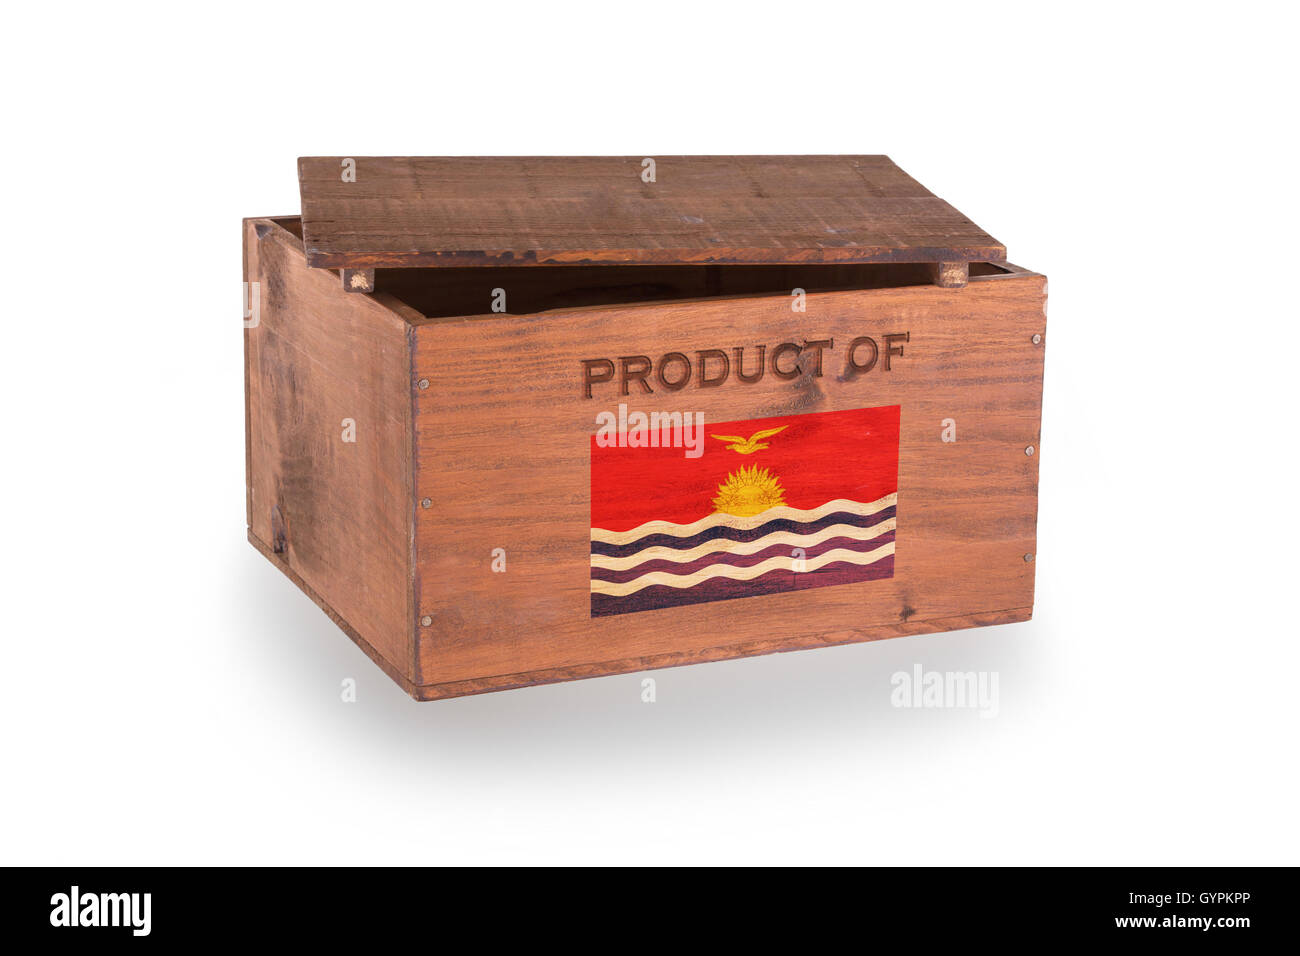 Wooden crate isolated on a white background - Stock Image